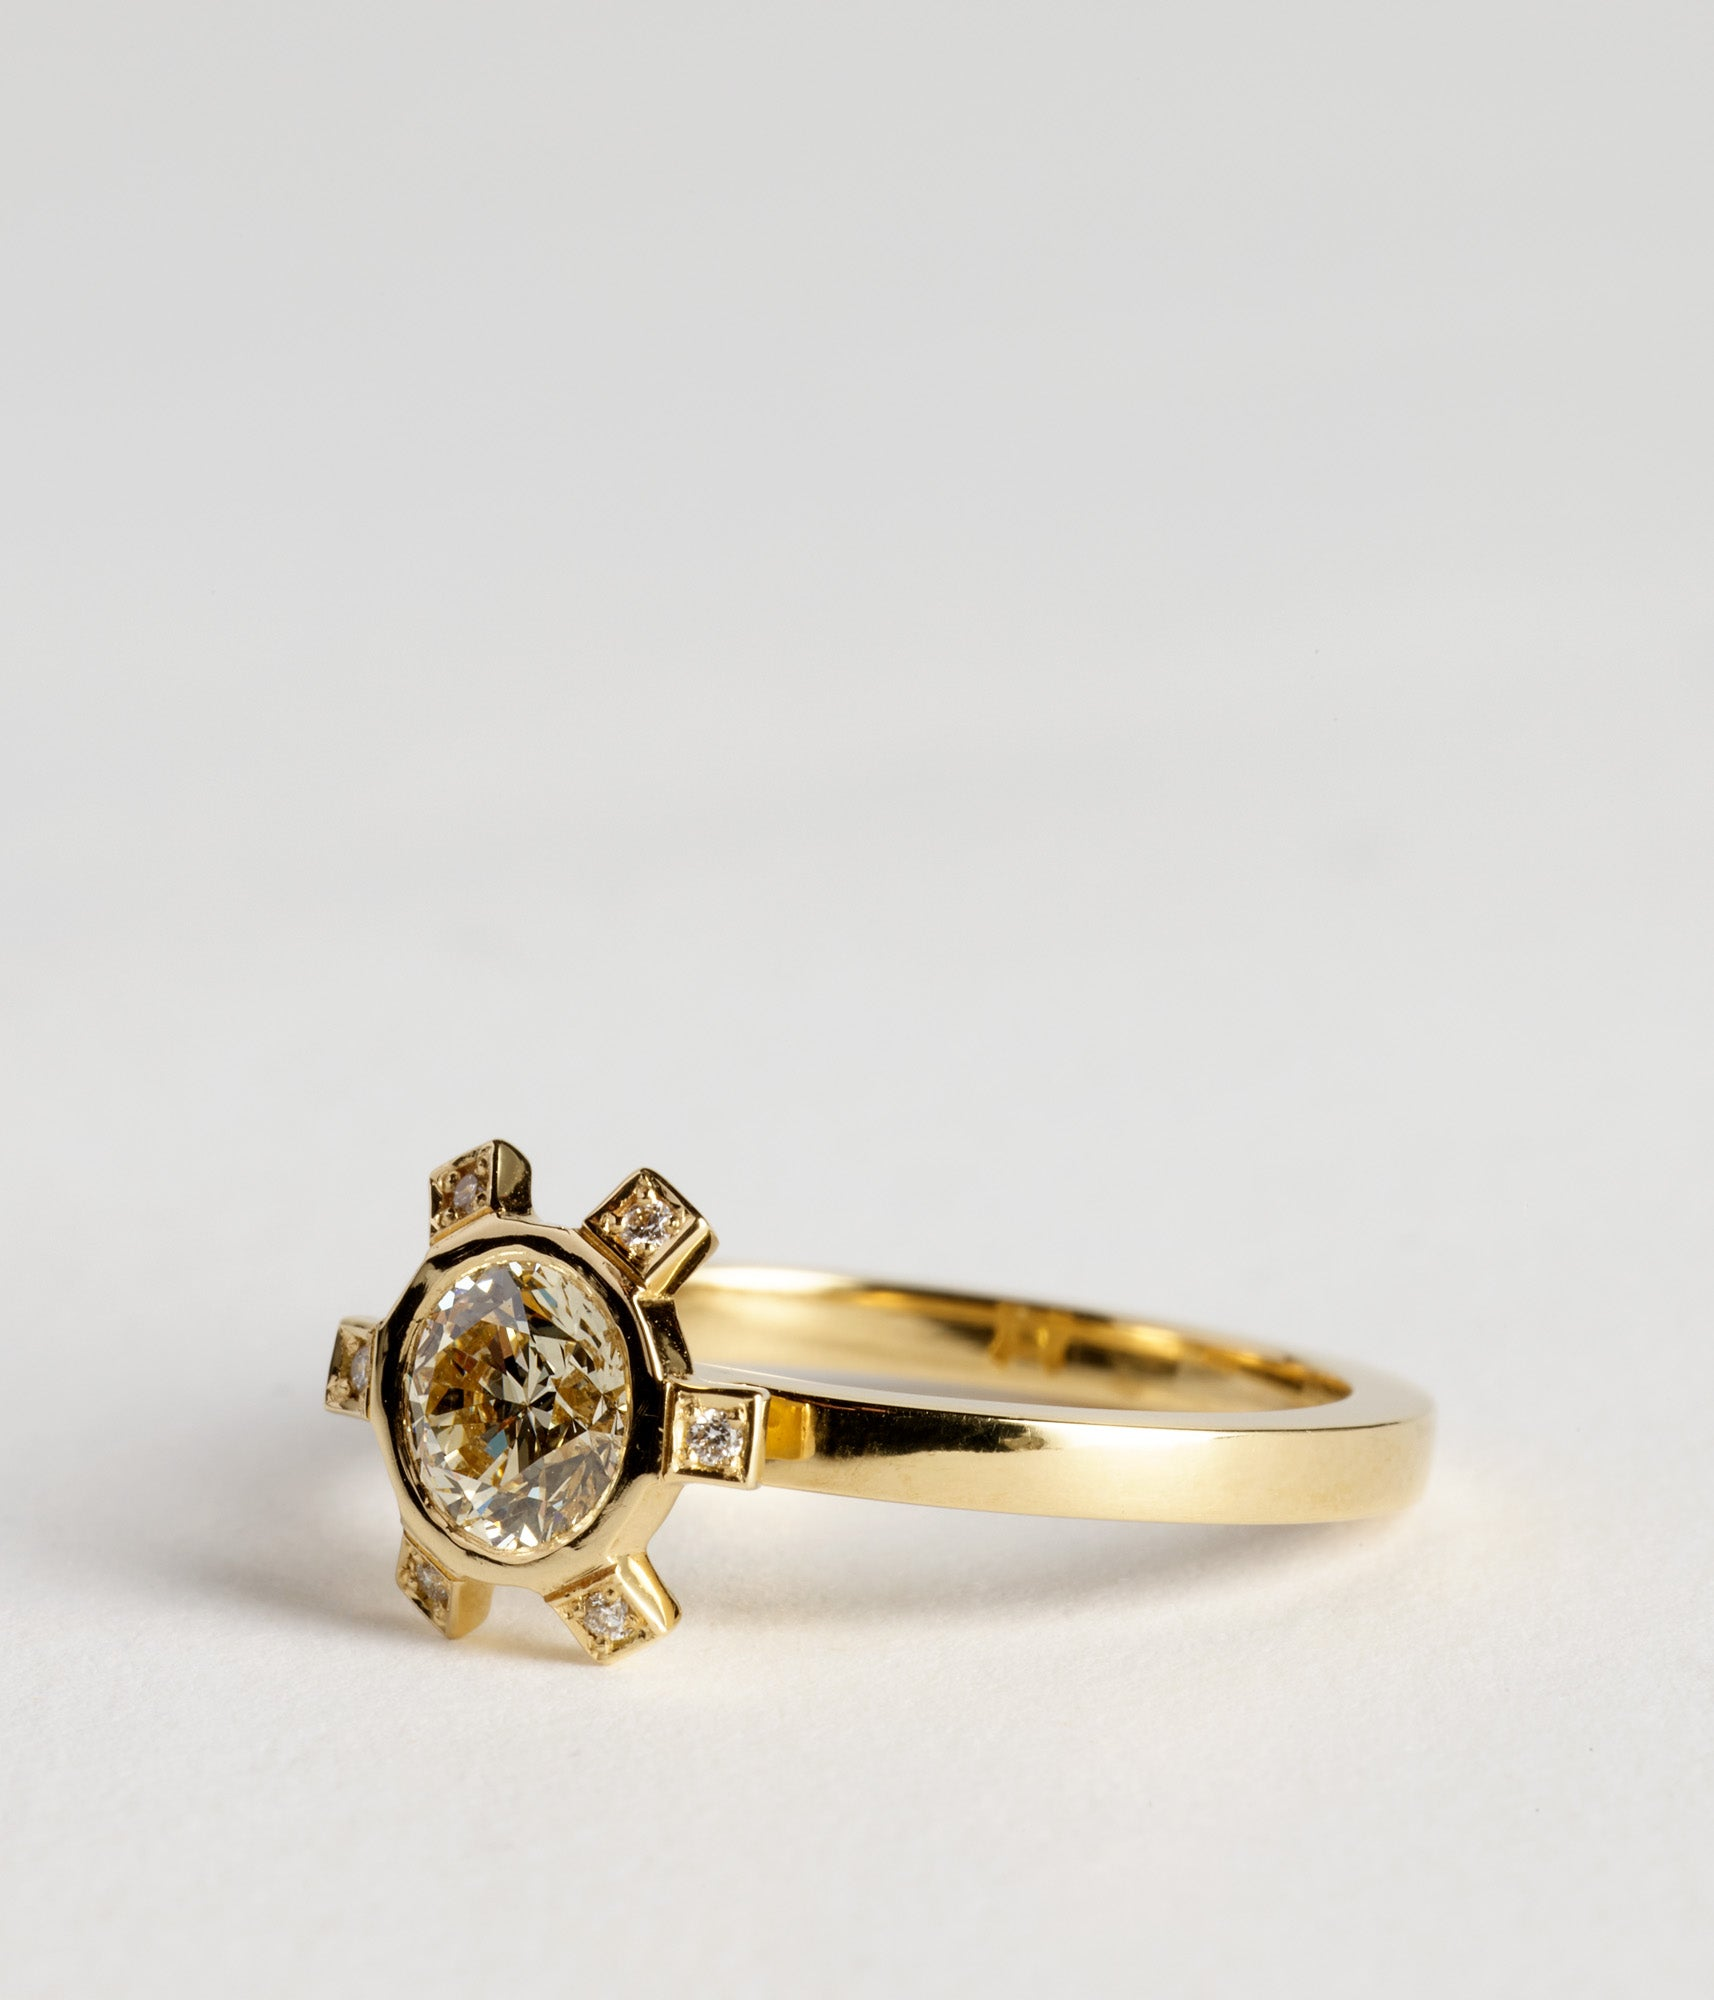 Champagne Beverley ring - 18ct Yellow gold